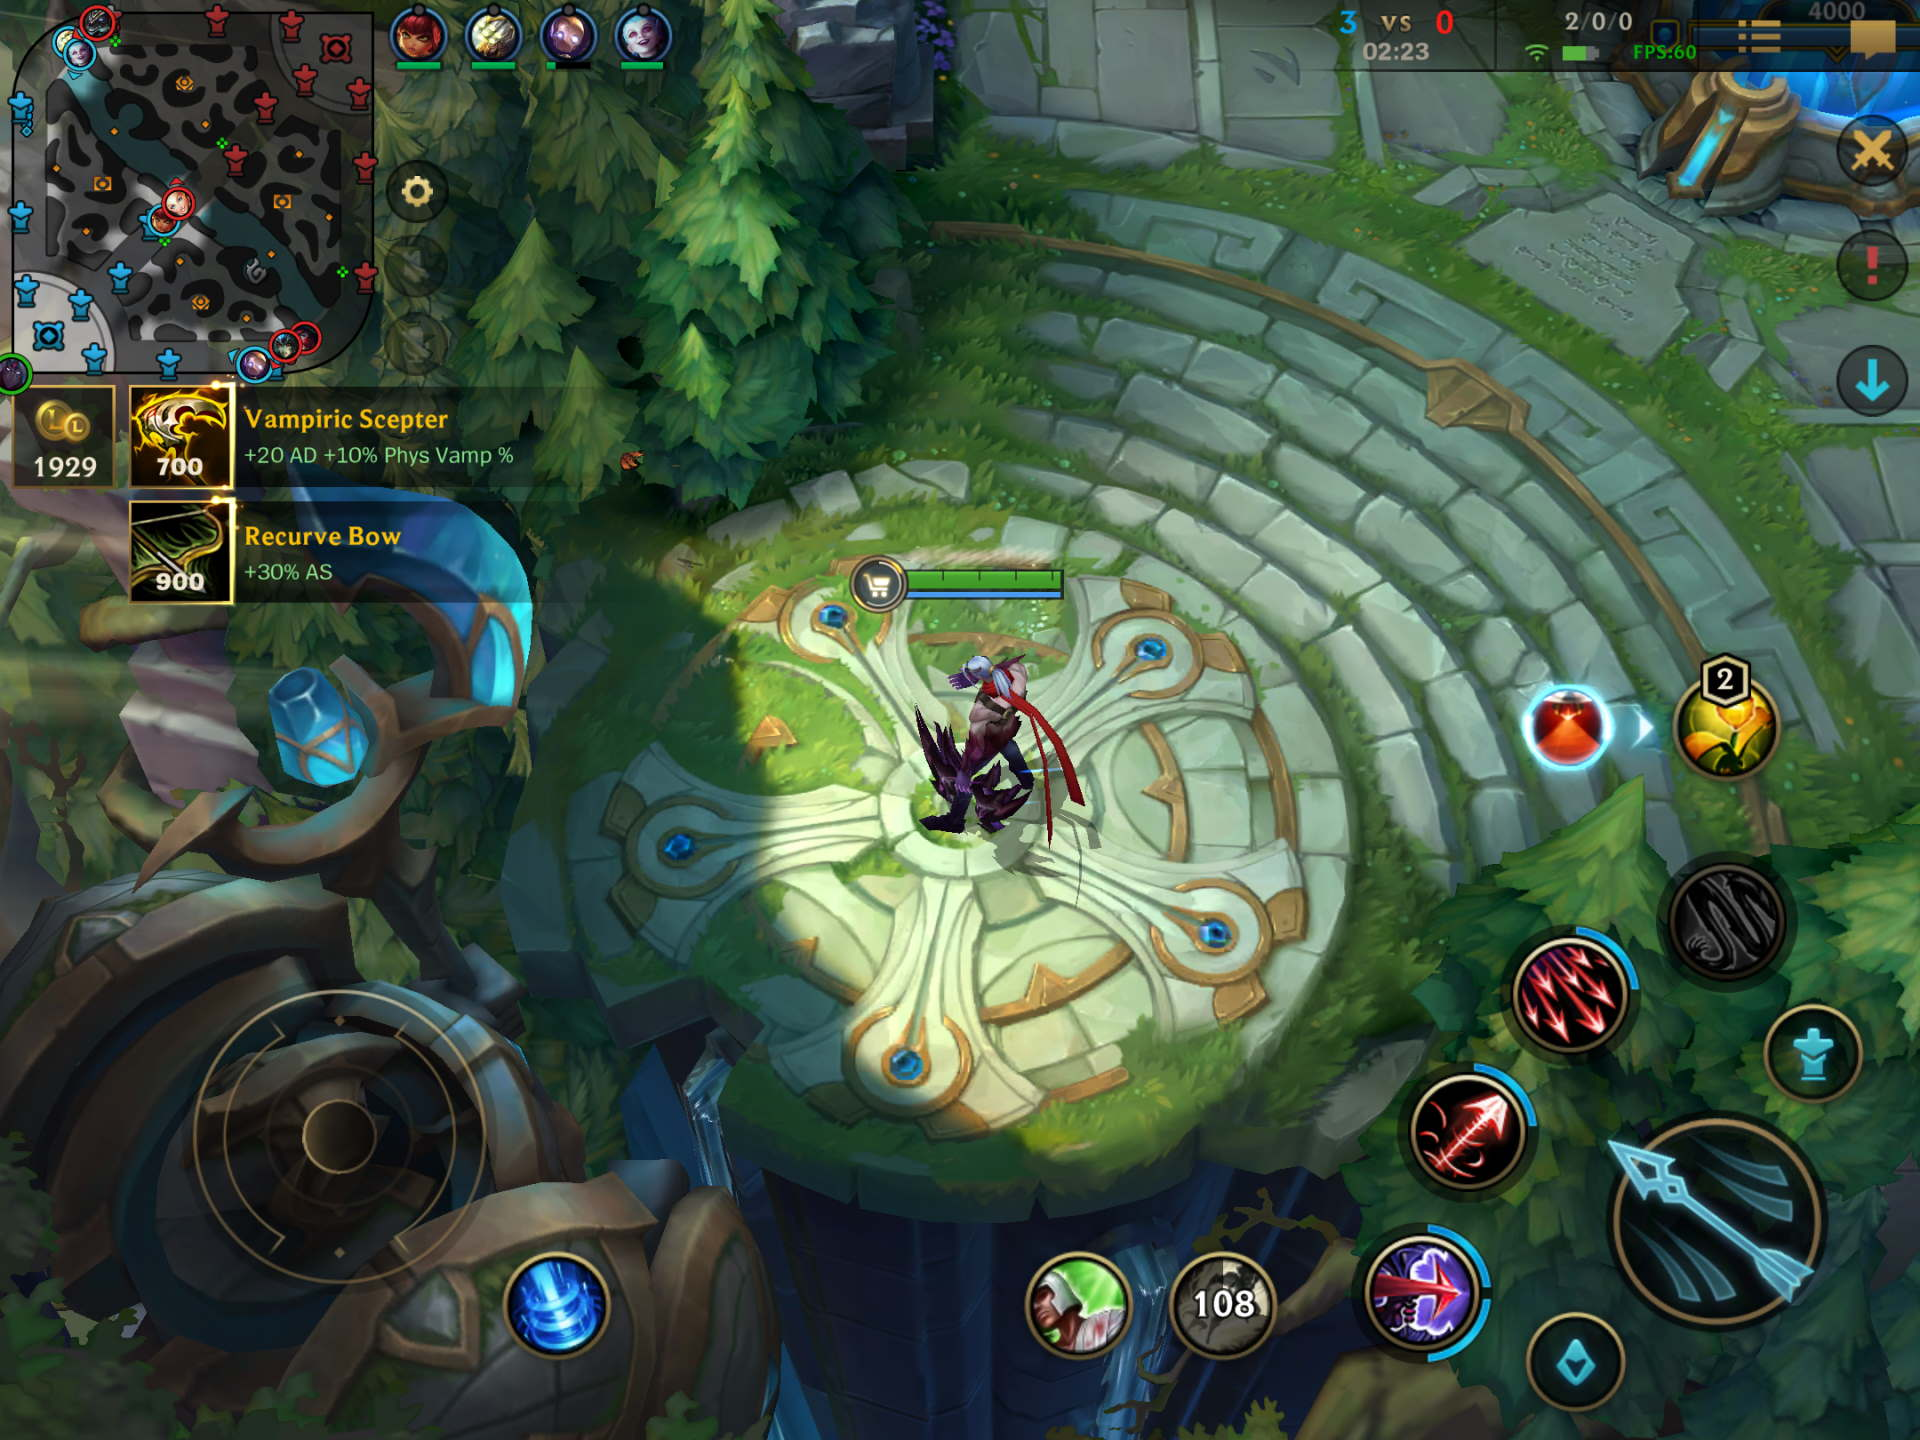 Spawning platform and shop in League of Legends Wild Rift